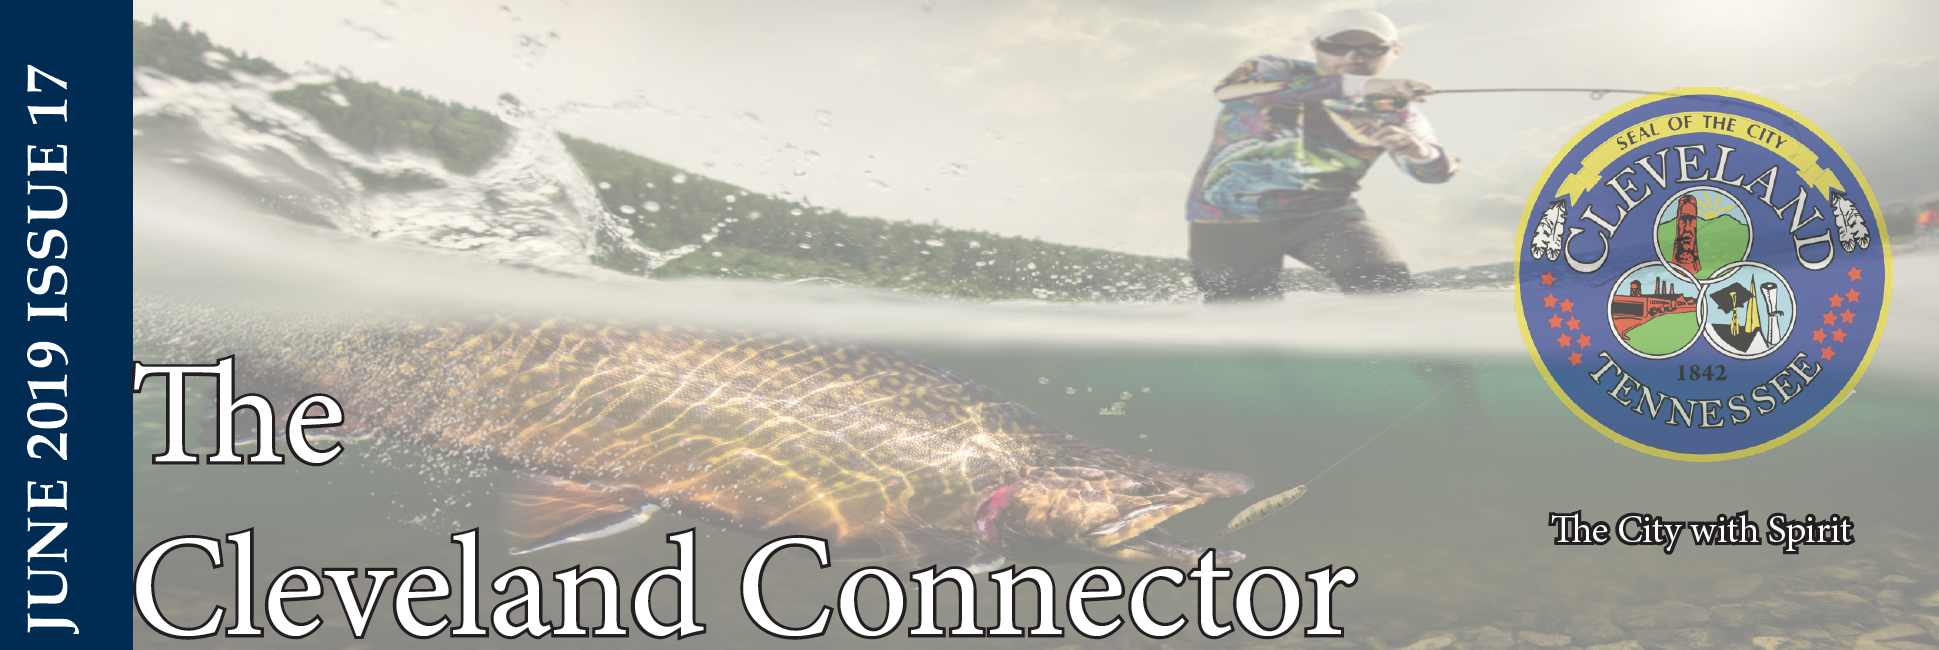 June 2019 Issue 17 - The Cleveland Connector Opens in new window